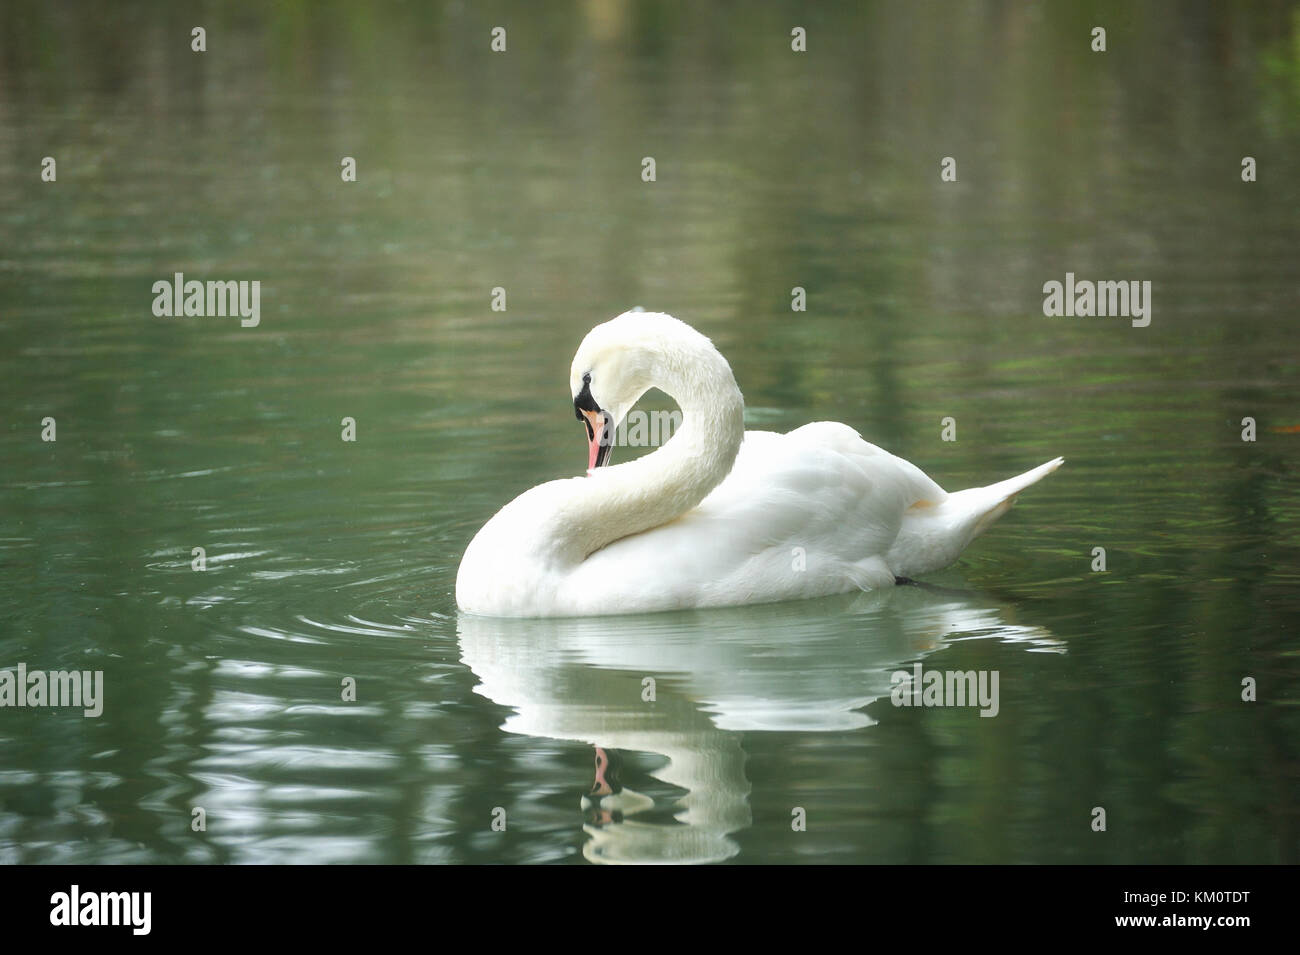 White swan portrait. Swan swimming on a river. Stock Photo